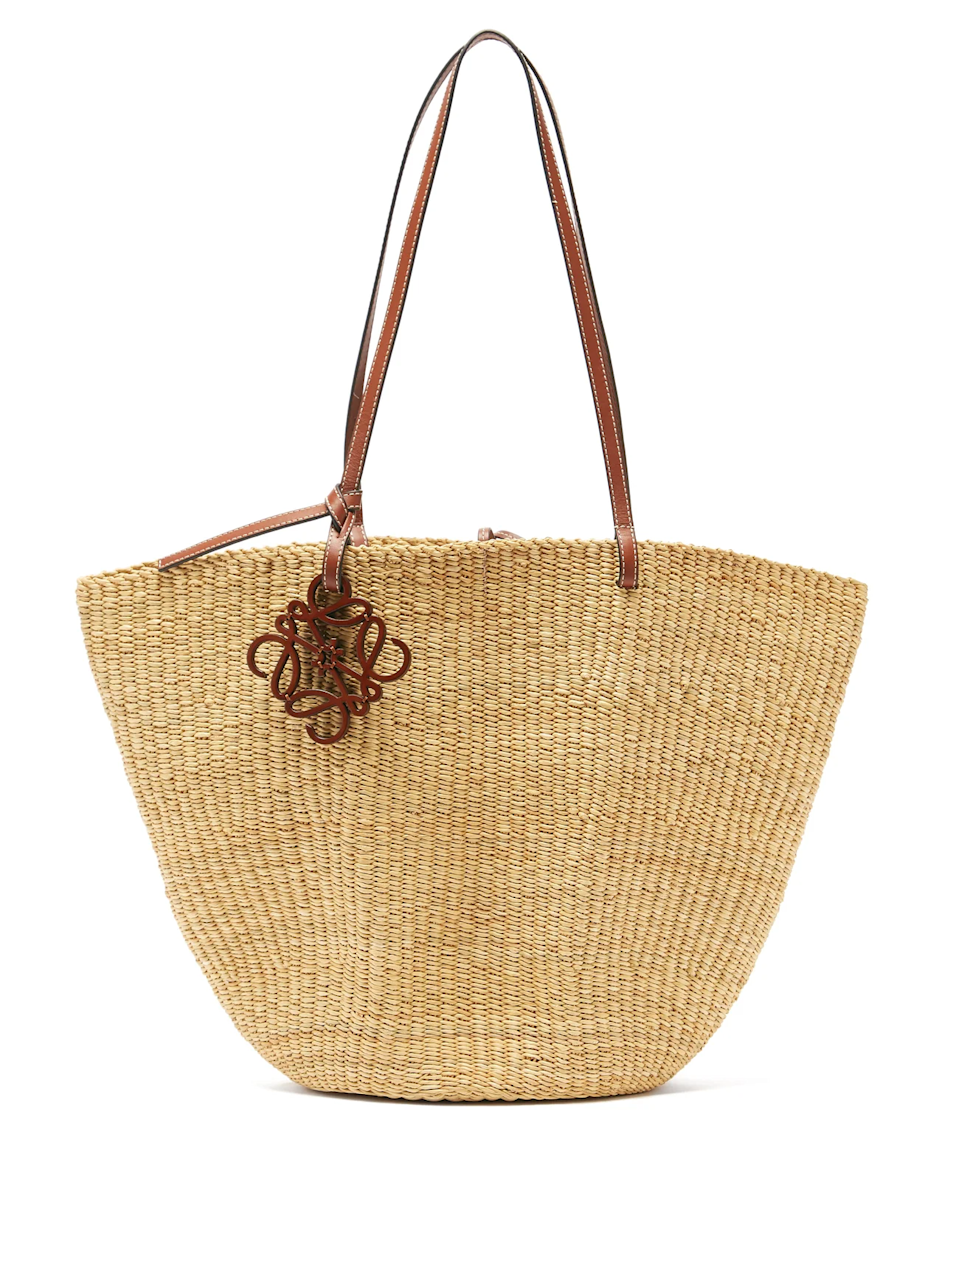 """<h2>Loewe Shell Leather & Raffia Basket Bag</h2><br>For when she Zoom calls her book club, beach background and all. <br><br><strong>Loewe</strong> Shell Leather and Raffia Basket Bag, $, available at <a href=""""https://go.skimresources.com/?id=30283X879131&url=https%3A%2F%2Fwww.matchesfashion.com%2Fus%2Fproducts%2F1344958"""" rel=""""nofollow noopener"""" target=""""_blank"""" data-ylk=""""slk:MatchesFashion"""" class=""""link rapid-noclick-resp"""">MatchesFashion</a>"""